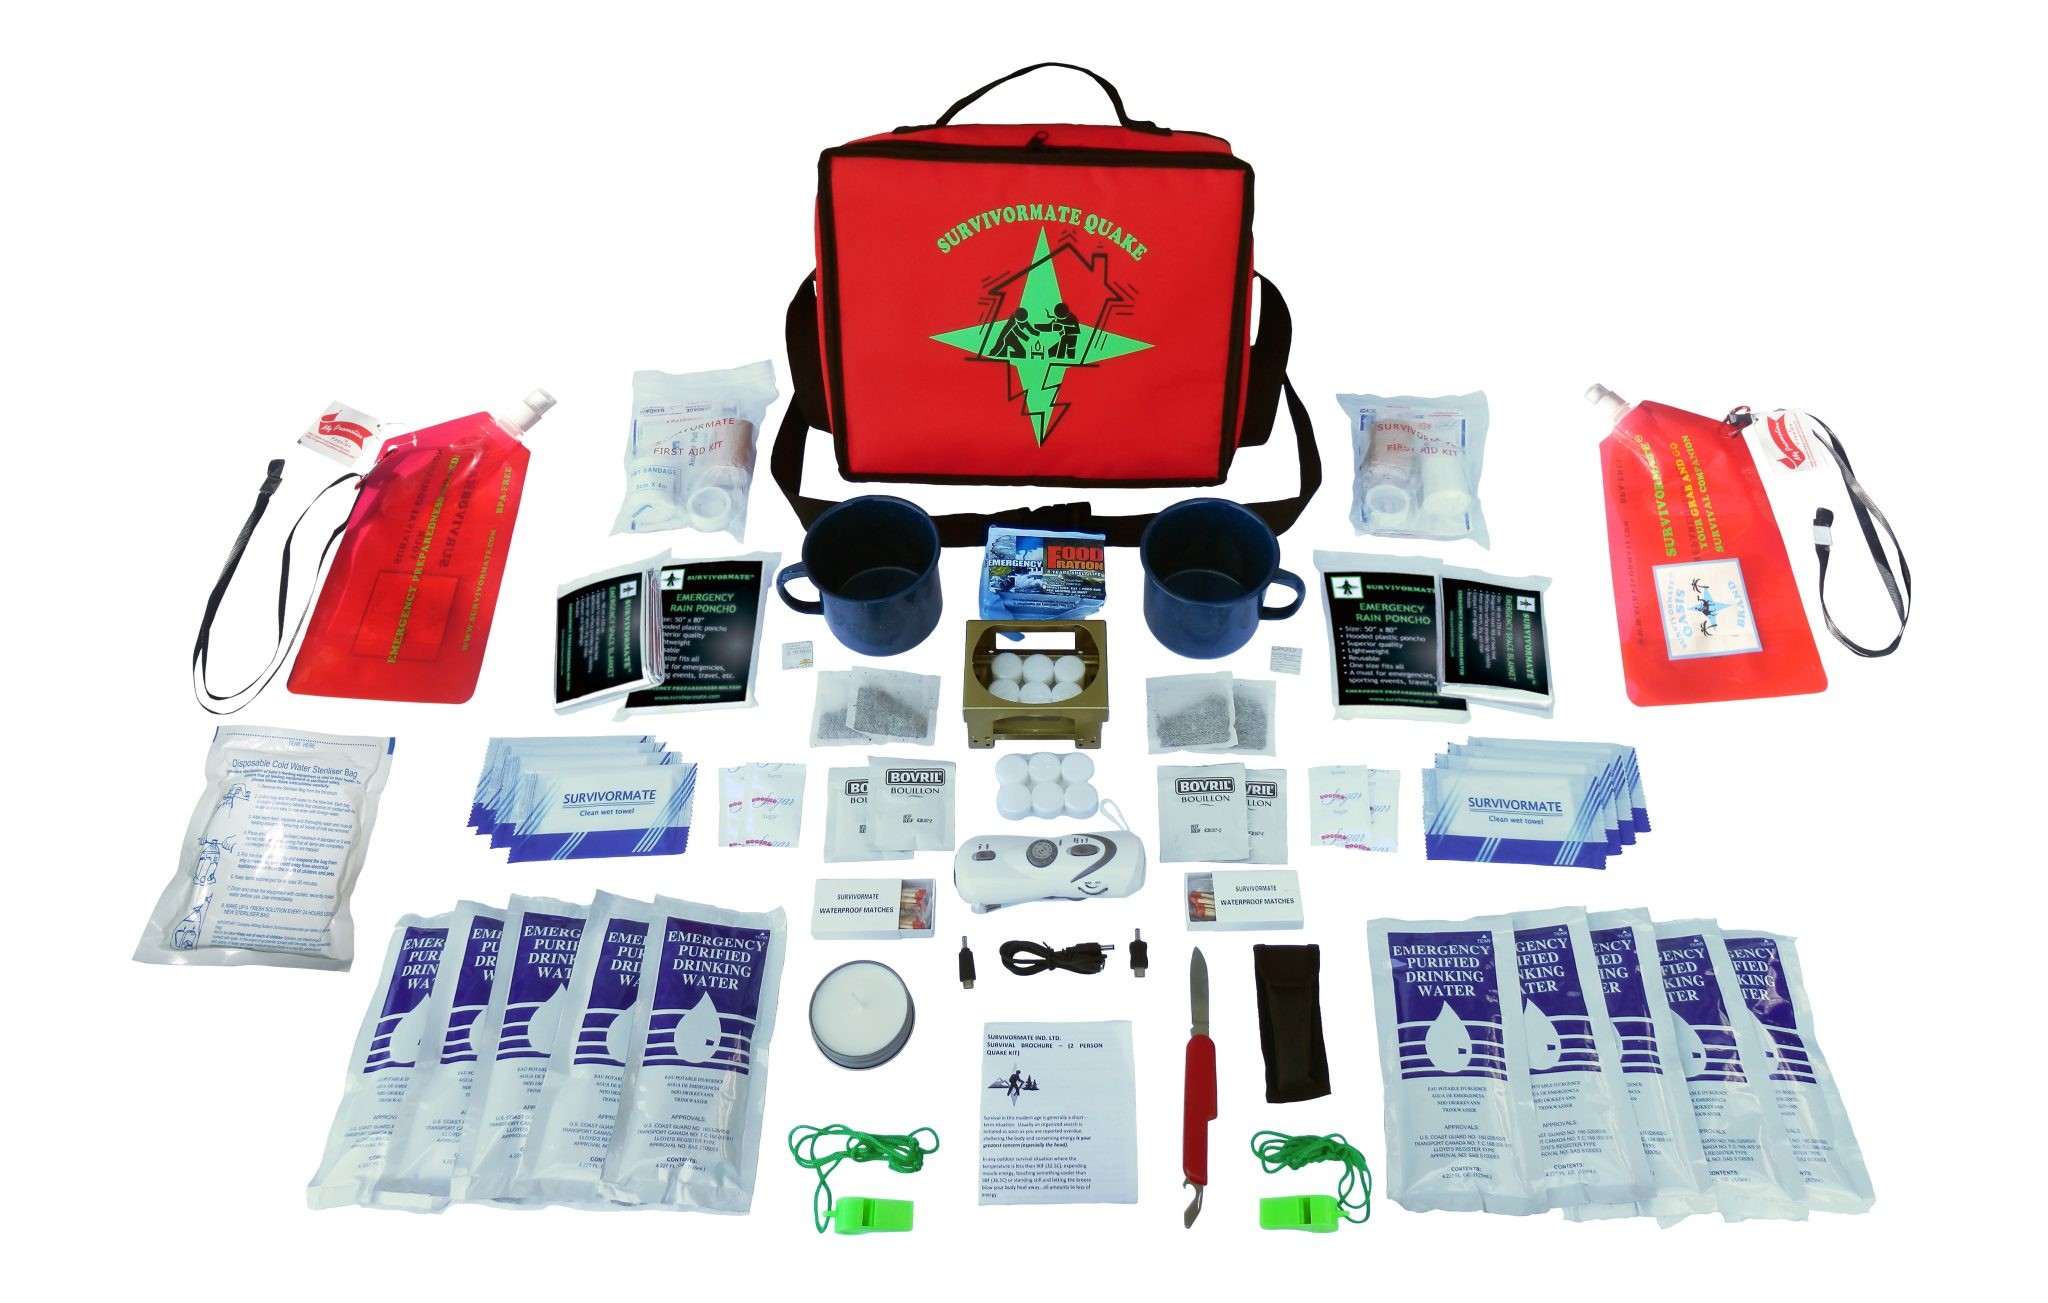 Survivormate Quake 2-Person Kit